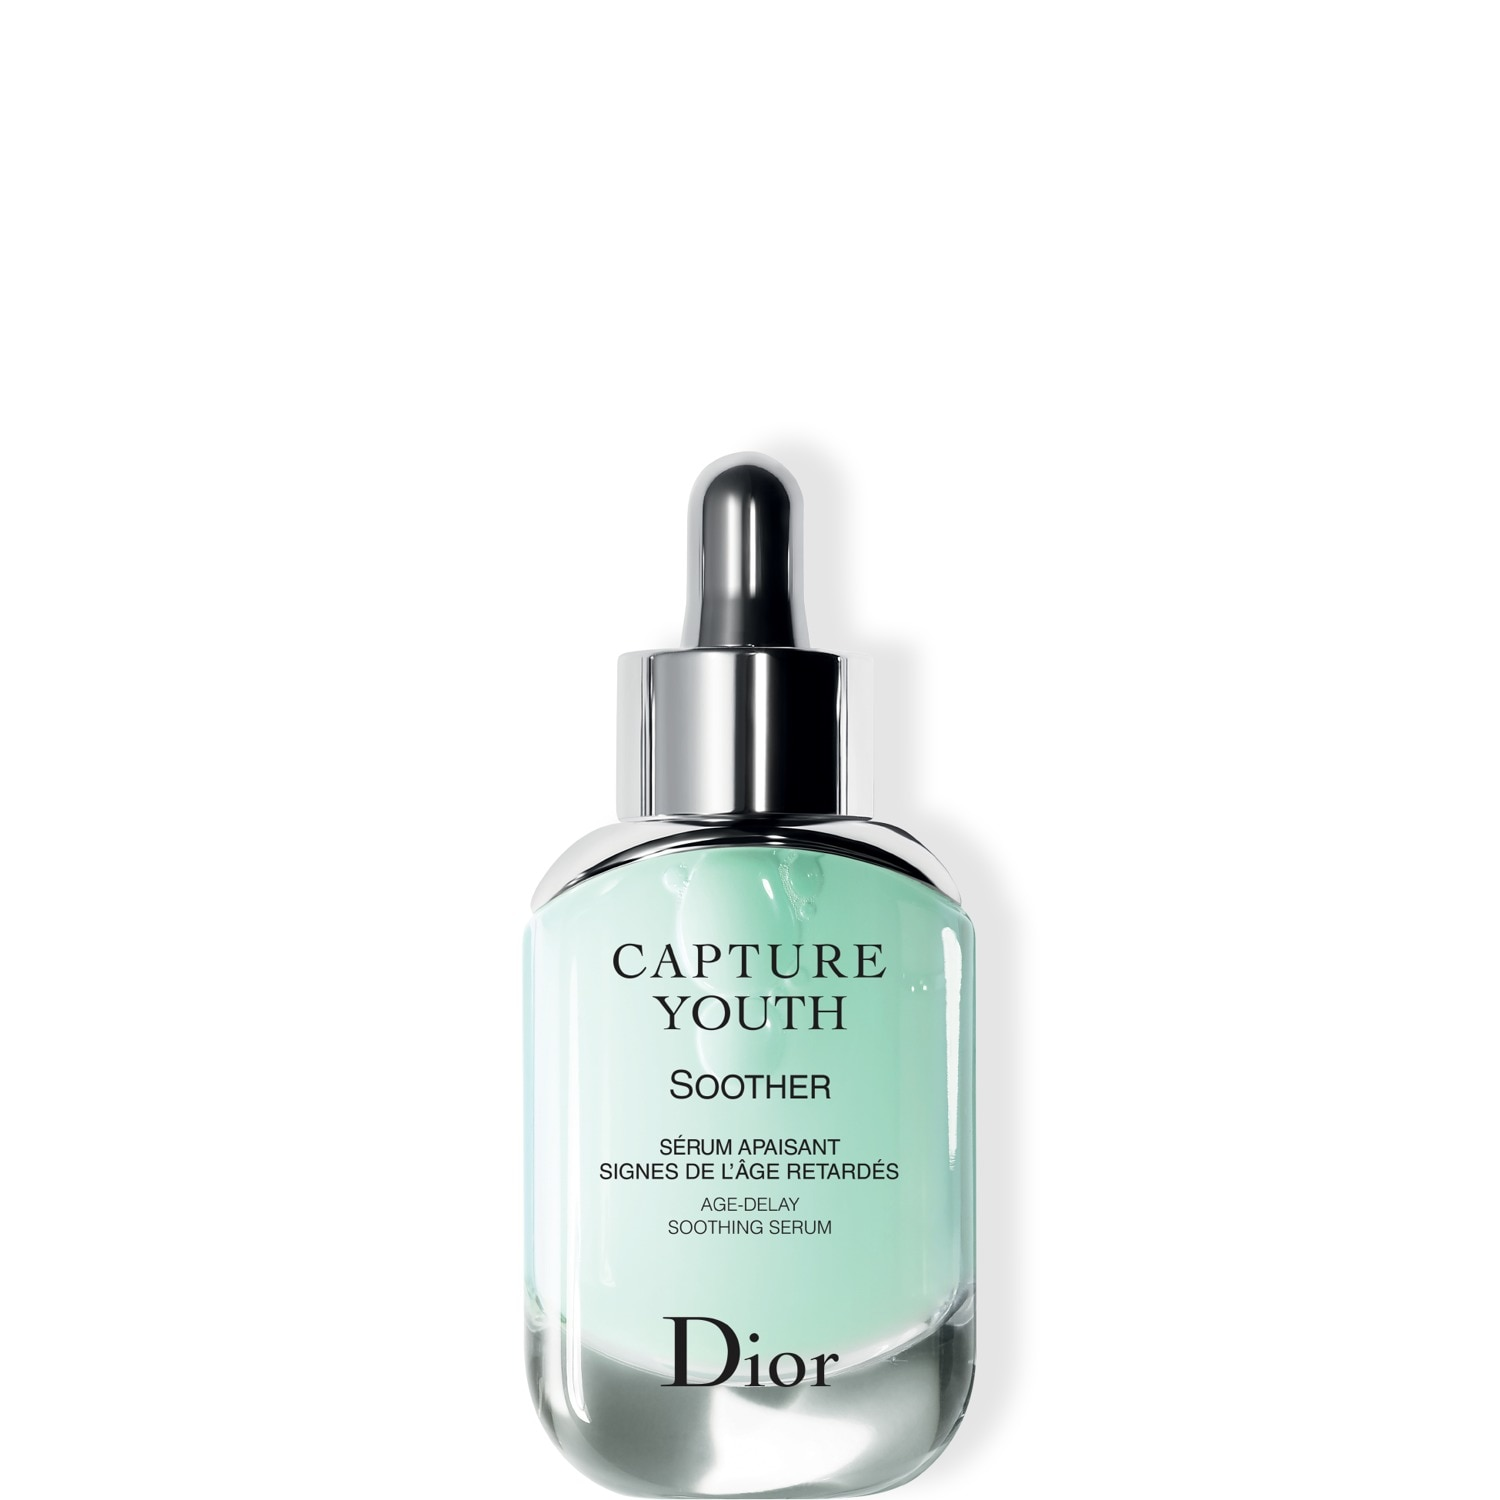 CAPTURE YOUTH REDNESS SOOTHER 30ML (SUERO FACIAL)